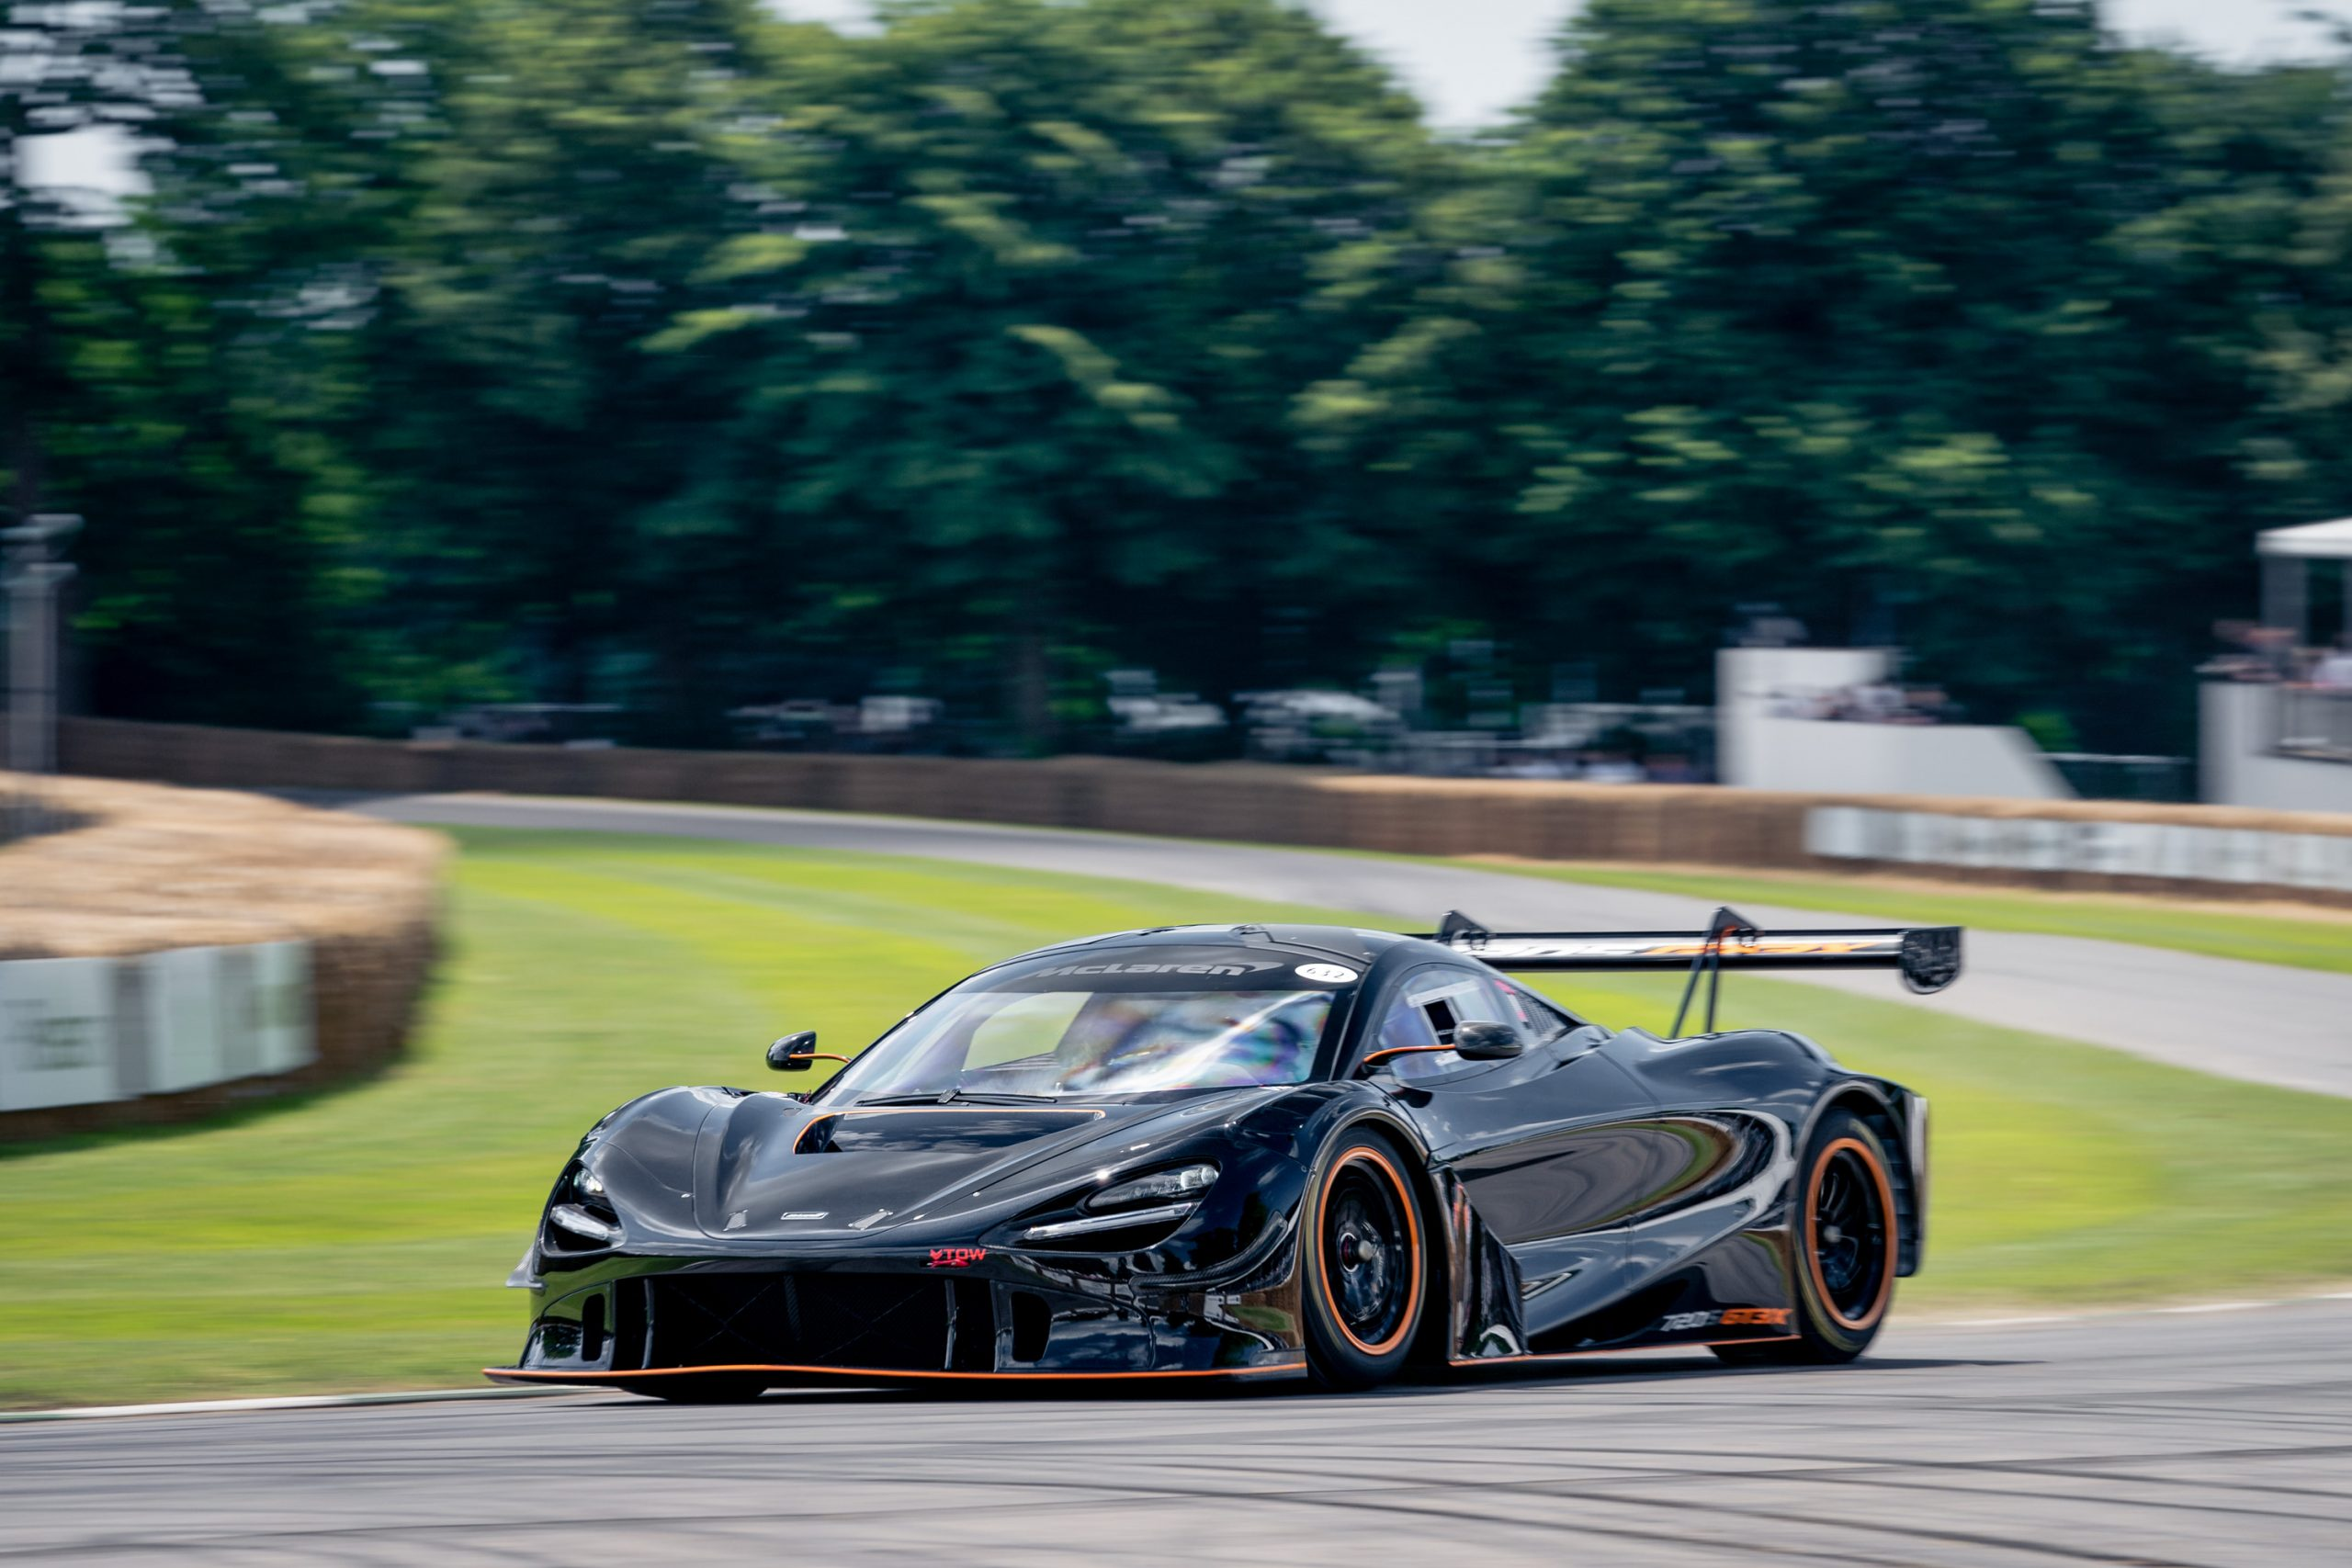 Goodwood FoS 720S GT3X 2 2 1 scaled Goodwood Festival of Speed 2021